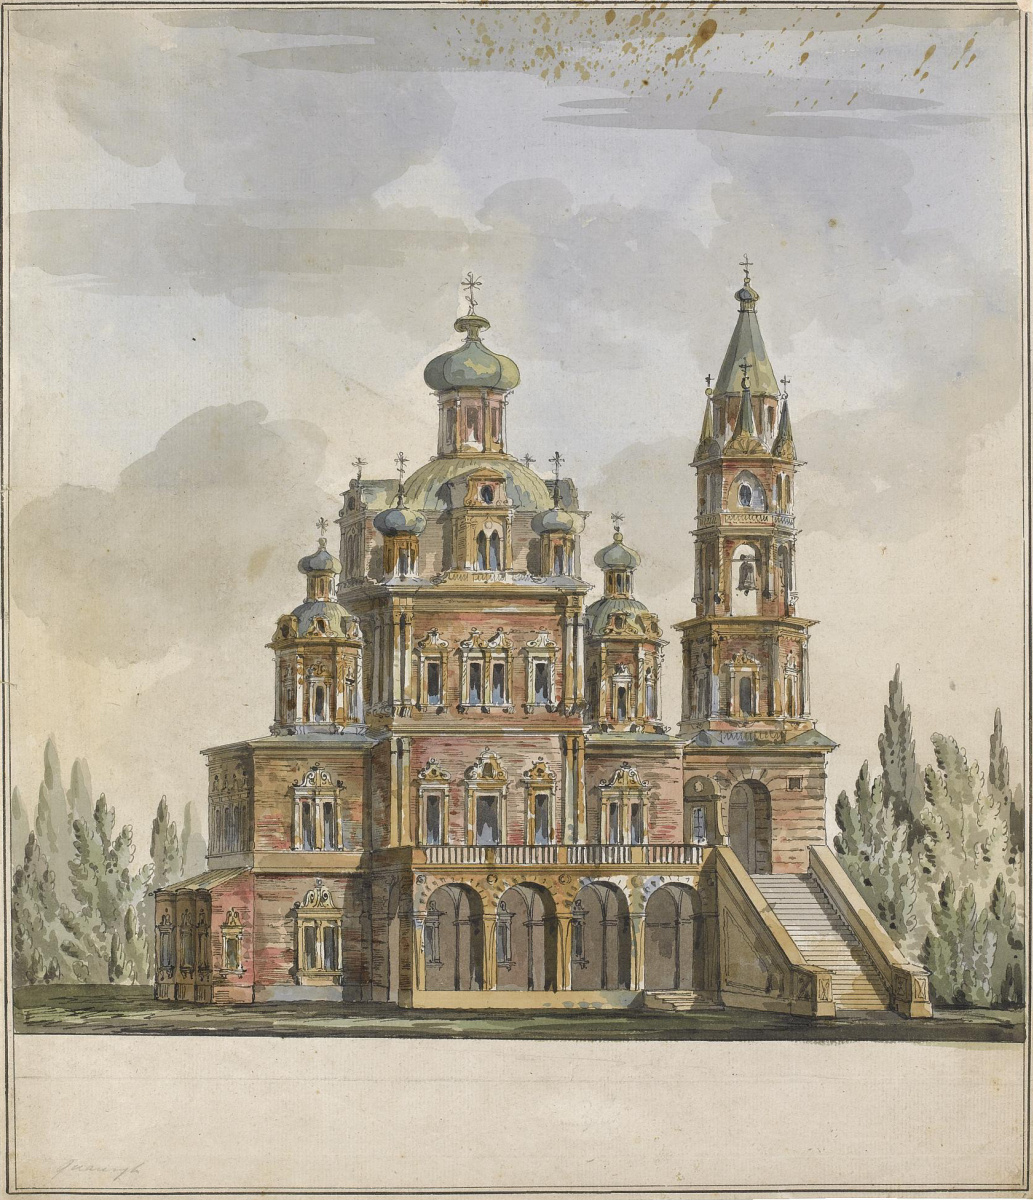 Giacomo Quarenghi. The project of the Church of the Assumption on Pokrovka, Moscow